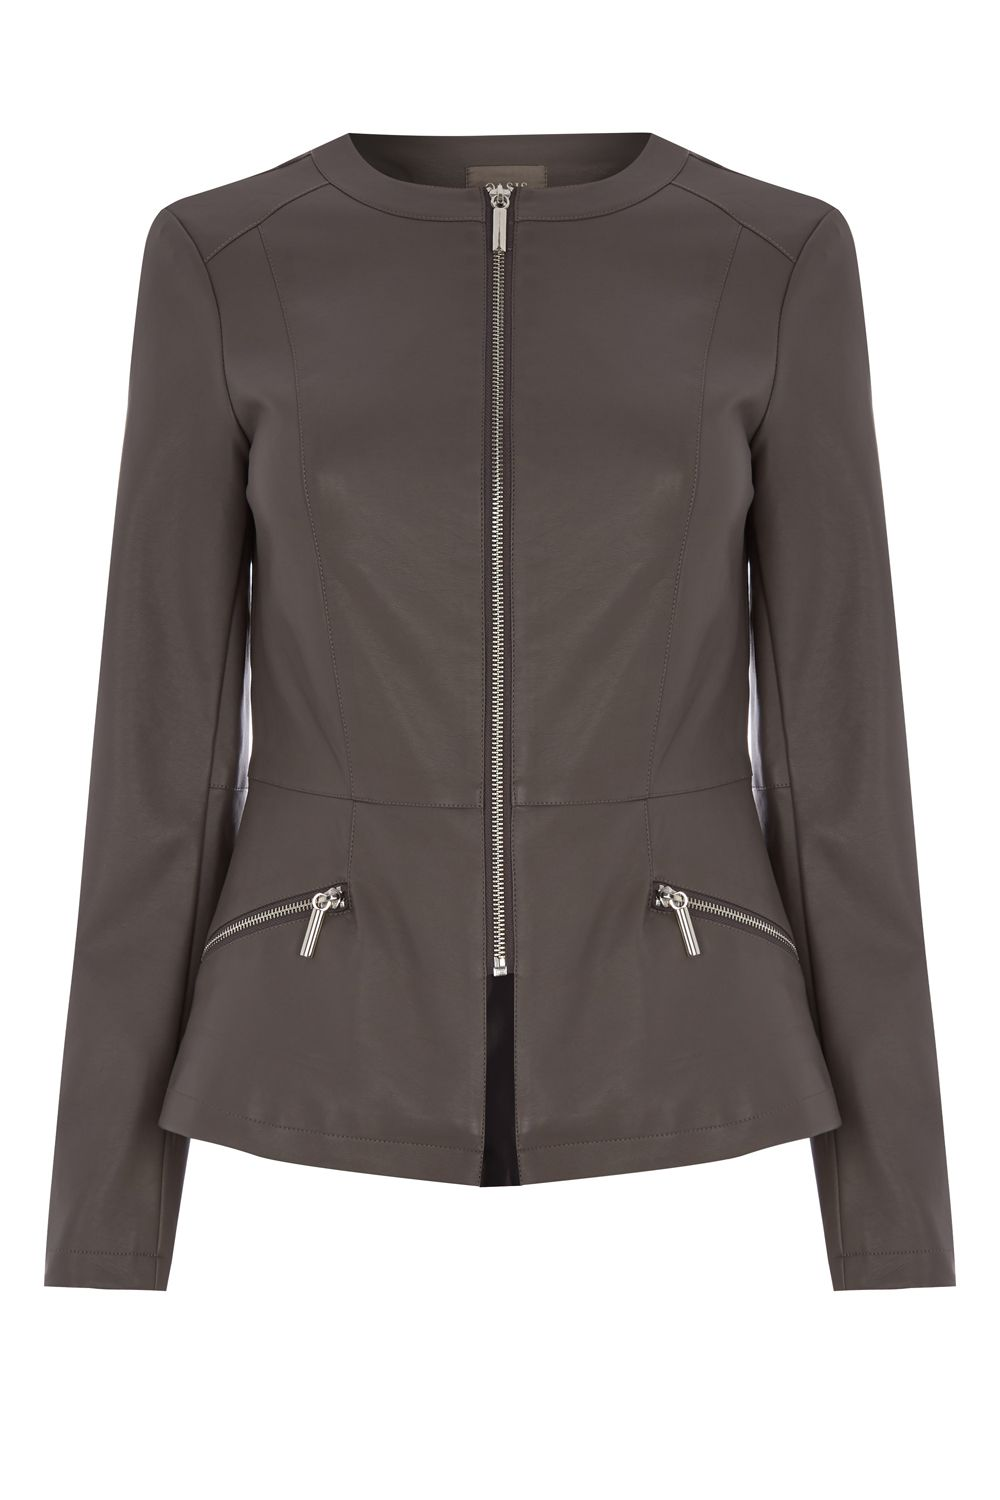 Oasis Faux Leather Collarless Jacket, Grey